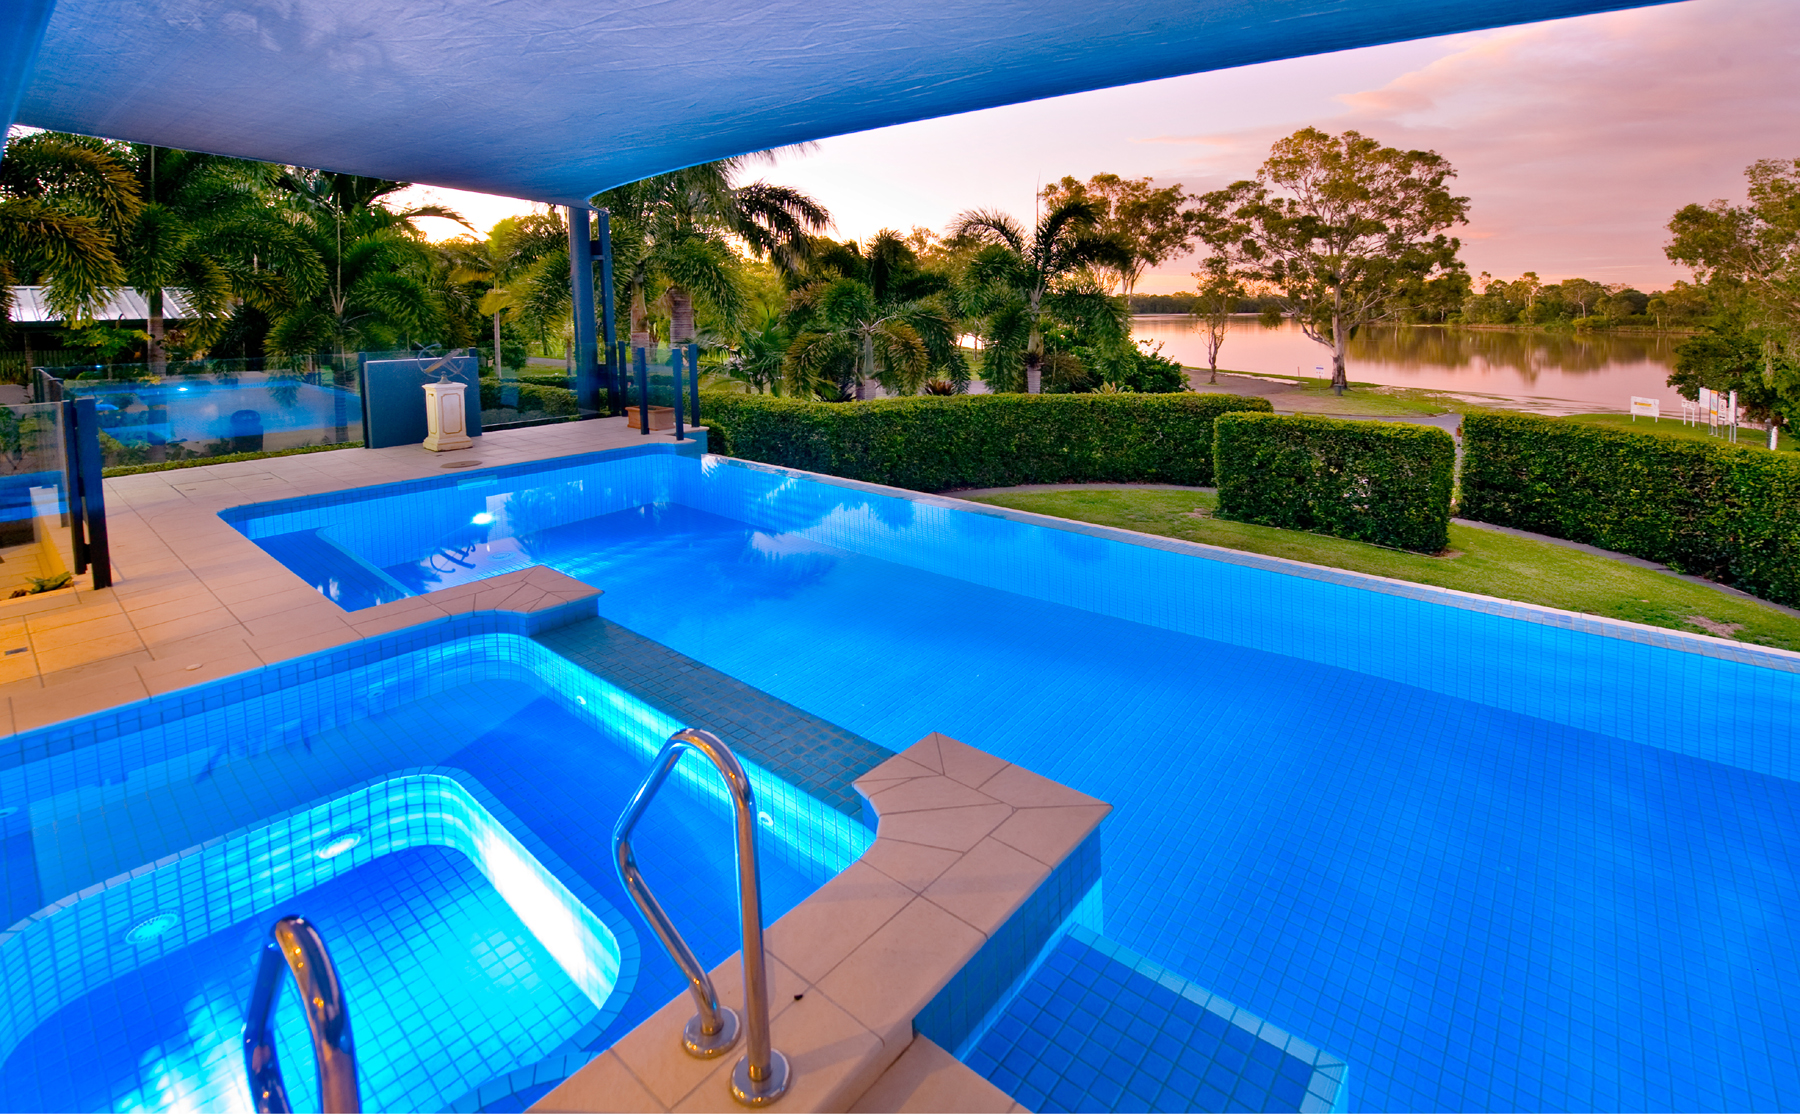 Luxury pool with beautiful views 52319